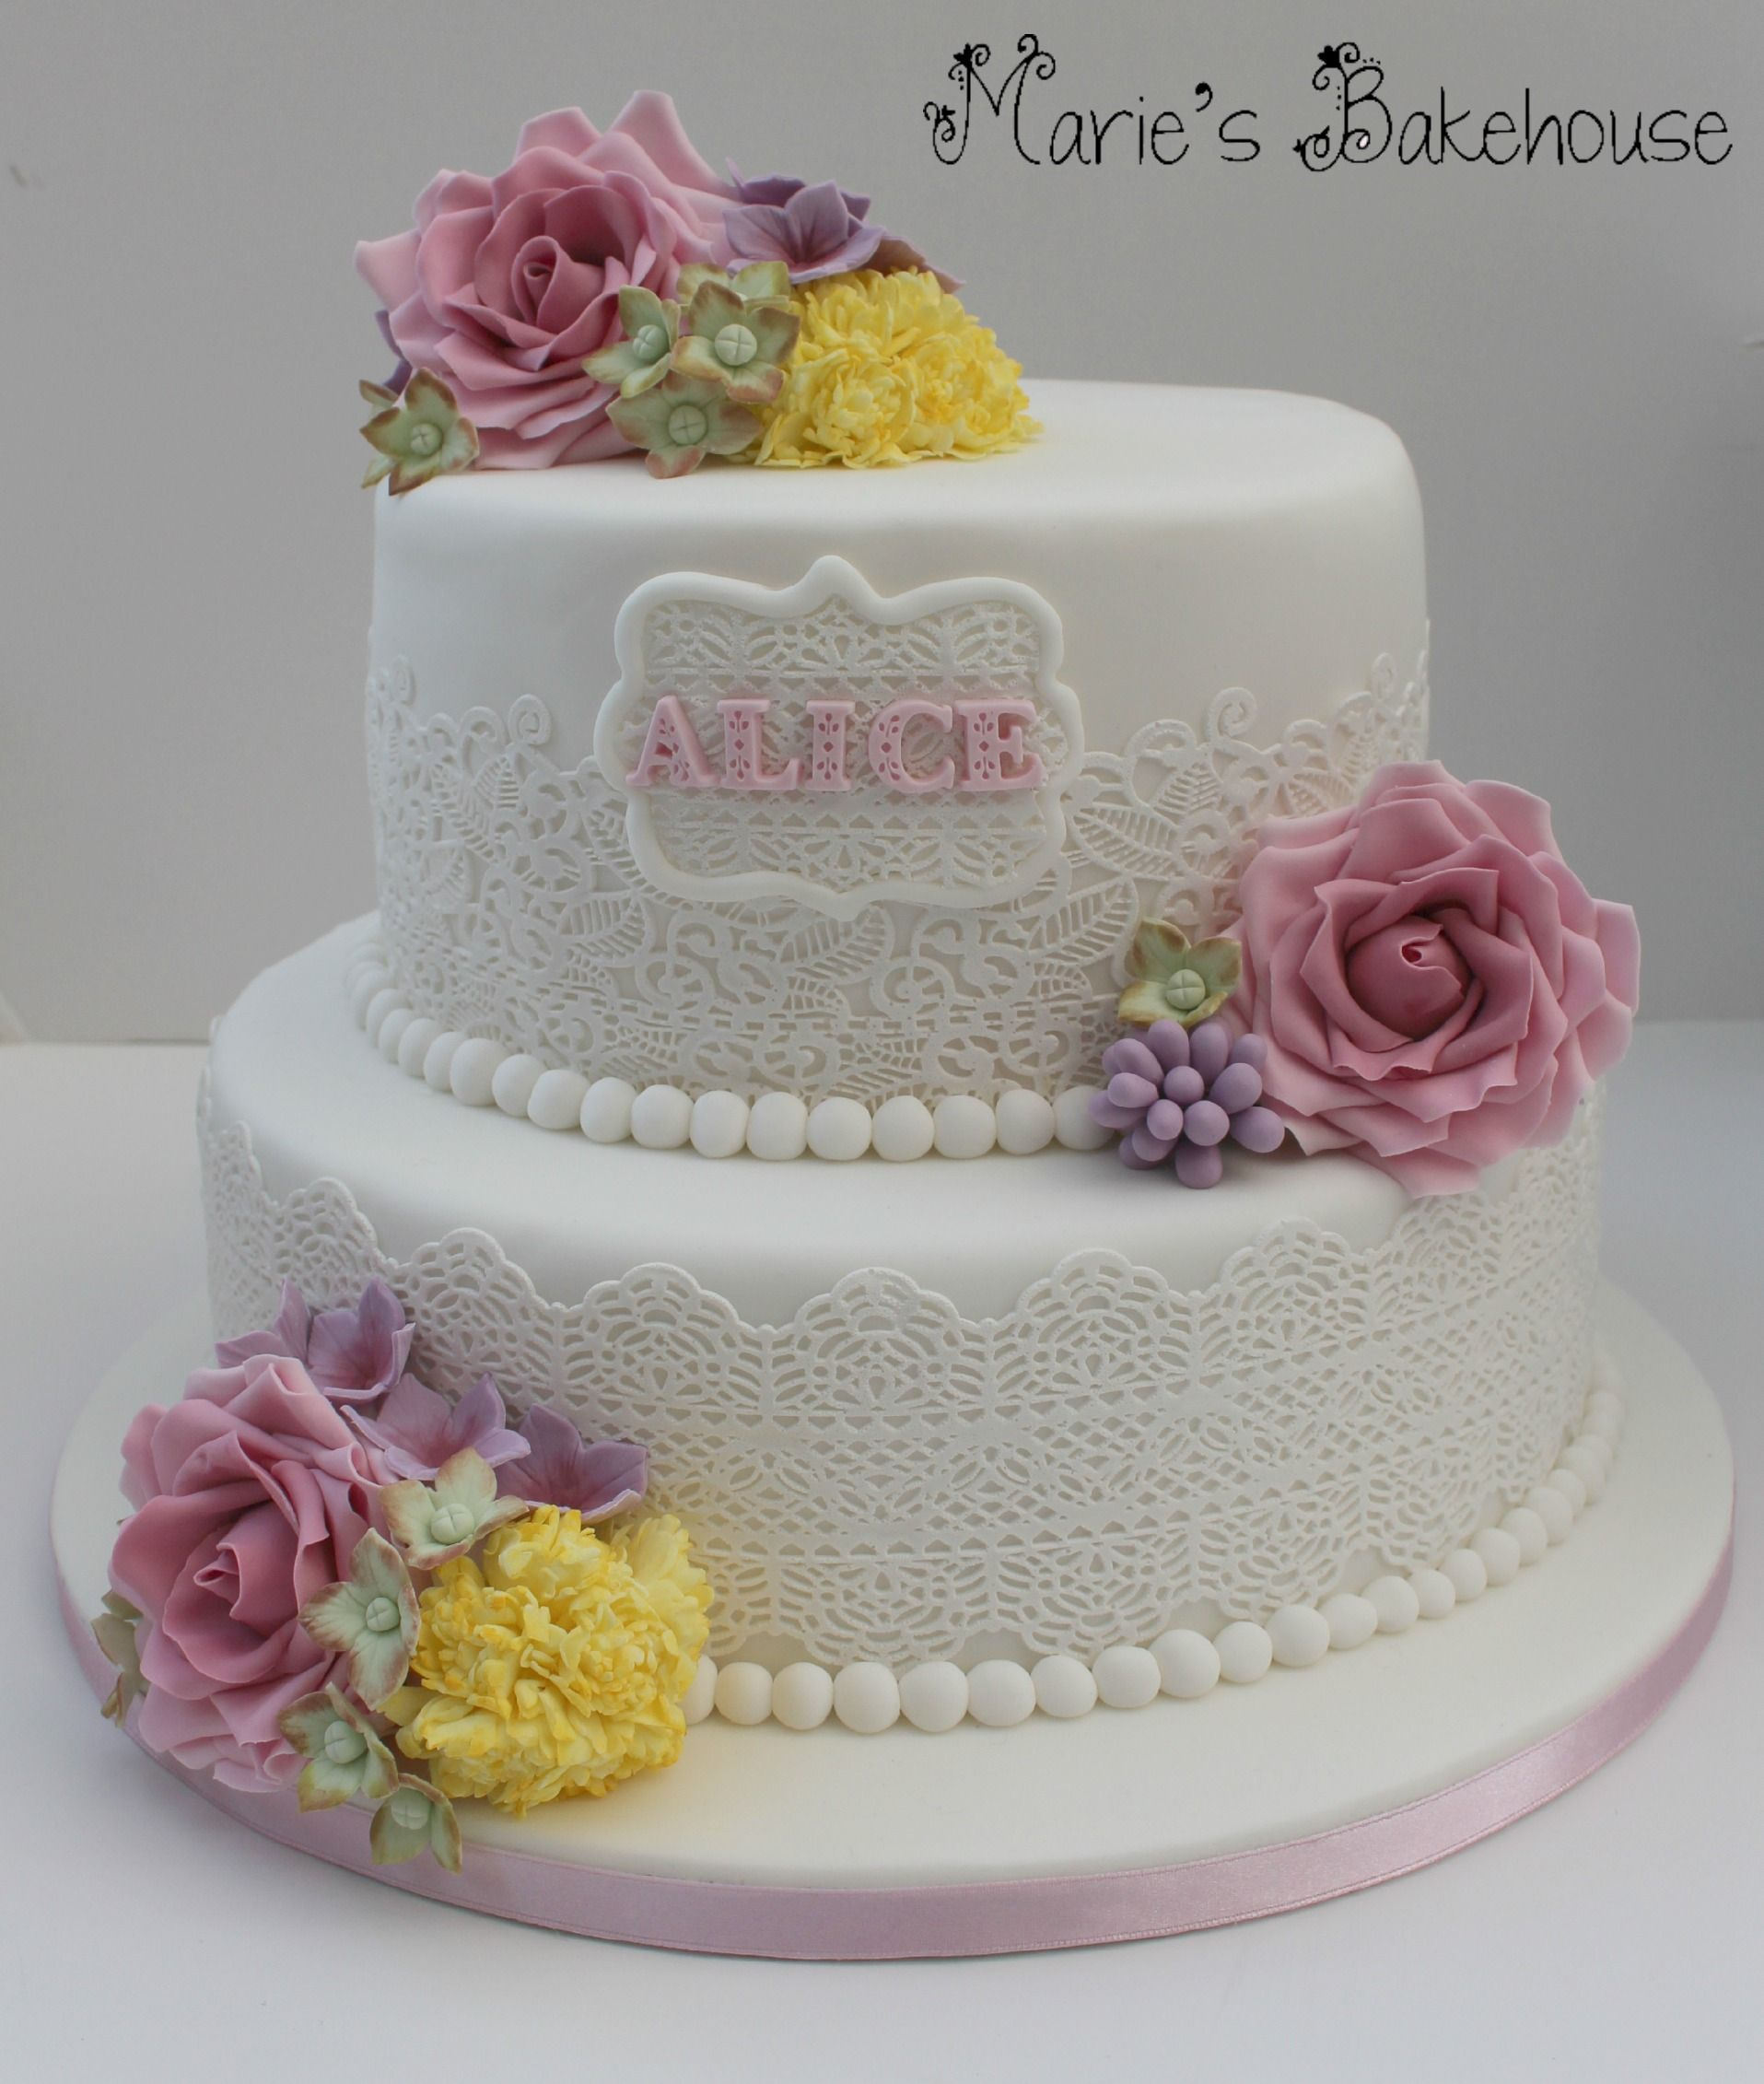 90Th Birthday Cake Ideas Alice Cake For My Grans 90th Birthday Cake Lace And Hand Made